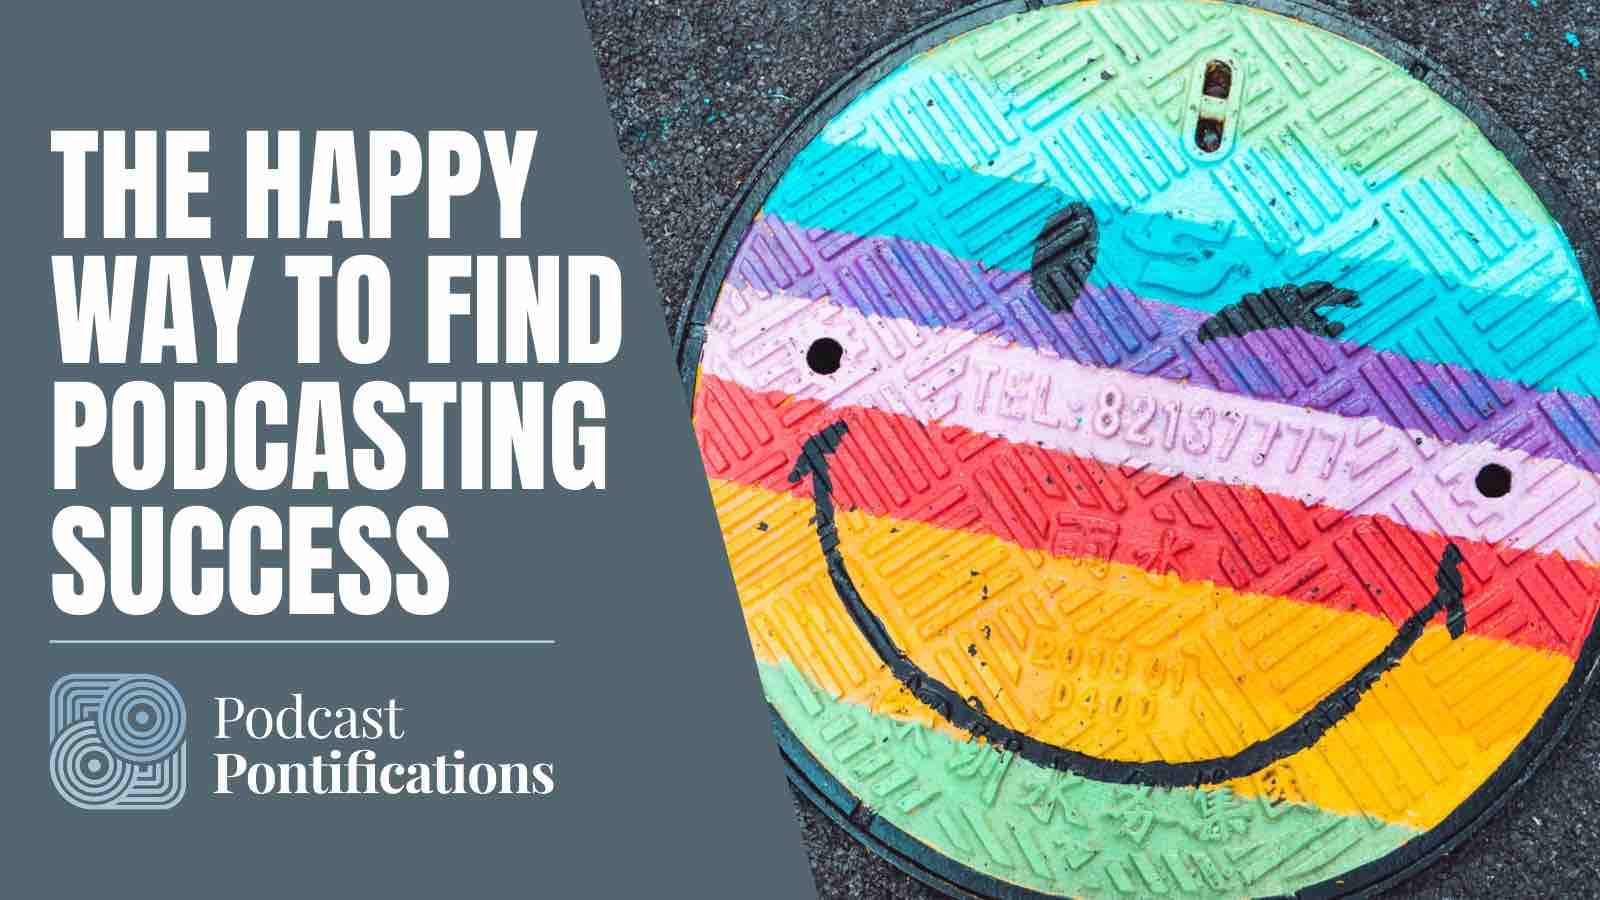 The Happy Way To Find Podcasting Success